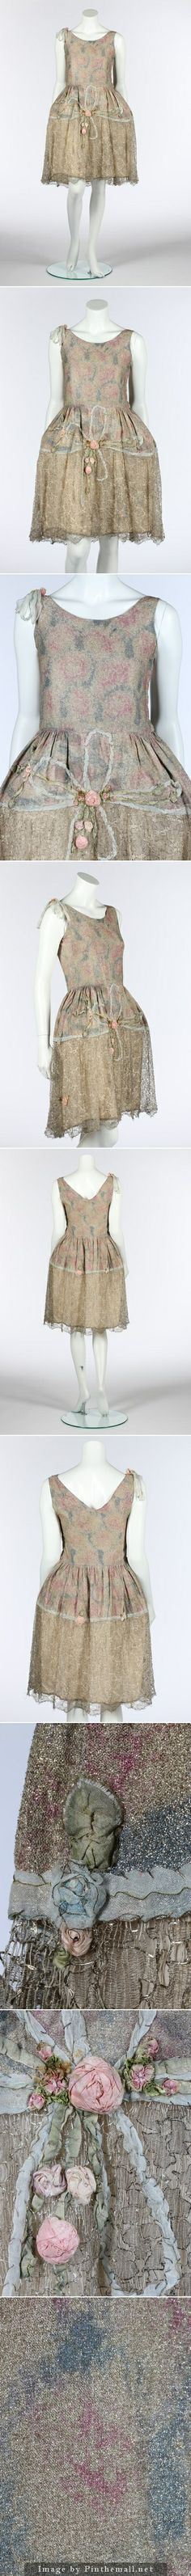 A printed lame robe de style, mid 1920s. the silver ground with mottled pink and blue floral ground, the skirt with large ribbon-work bow and flowers above a silver tulle flounce, with internal hooped net panniers. KTA